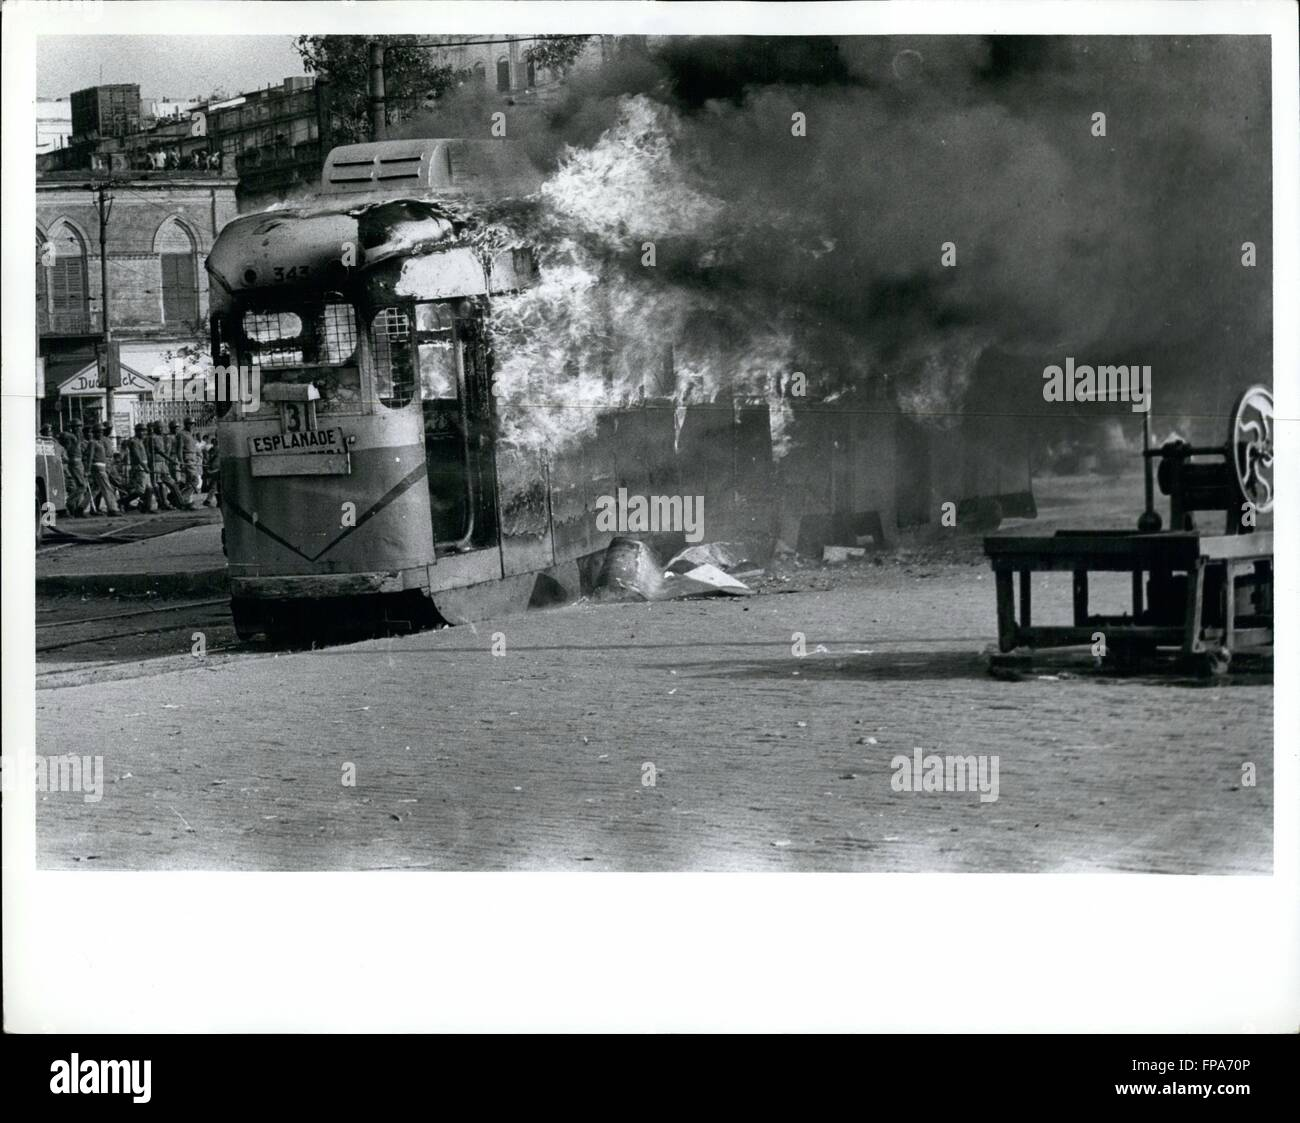 1967 - Calcutta Violence : A fresh wave of mob violence and rioting has been sweeping Calcutta since December 18 - Stock Image